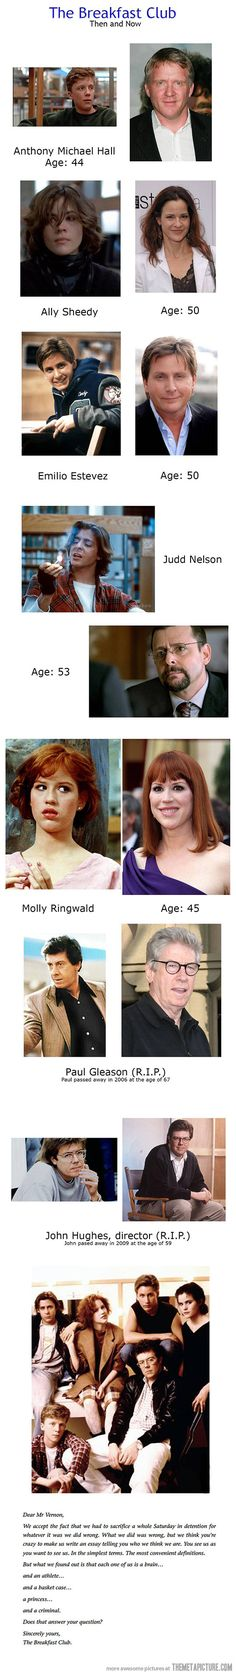 The Breakfast Club: then and now…